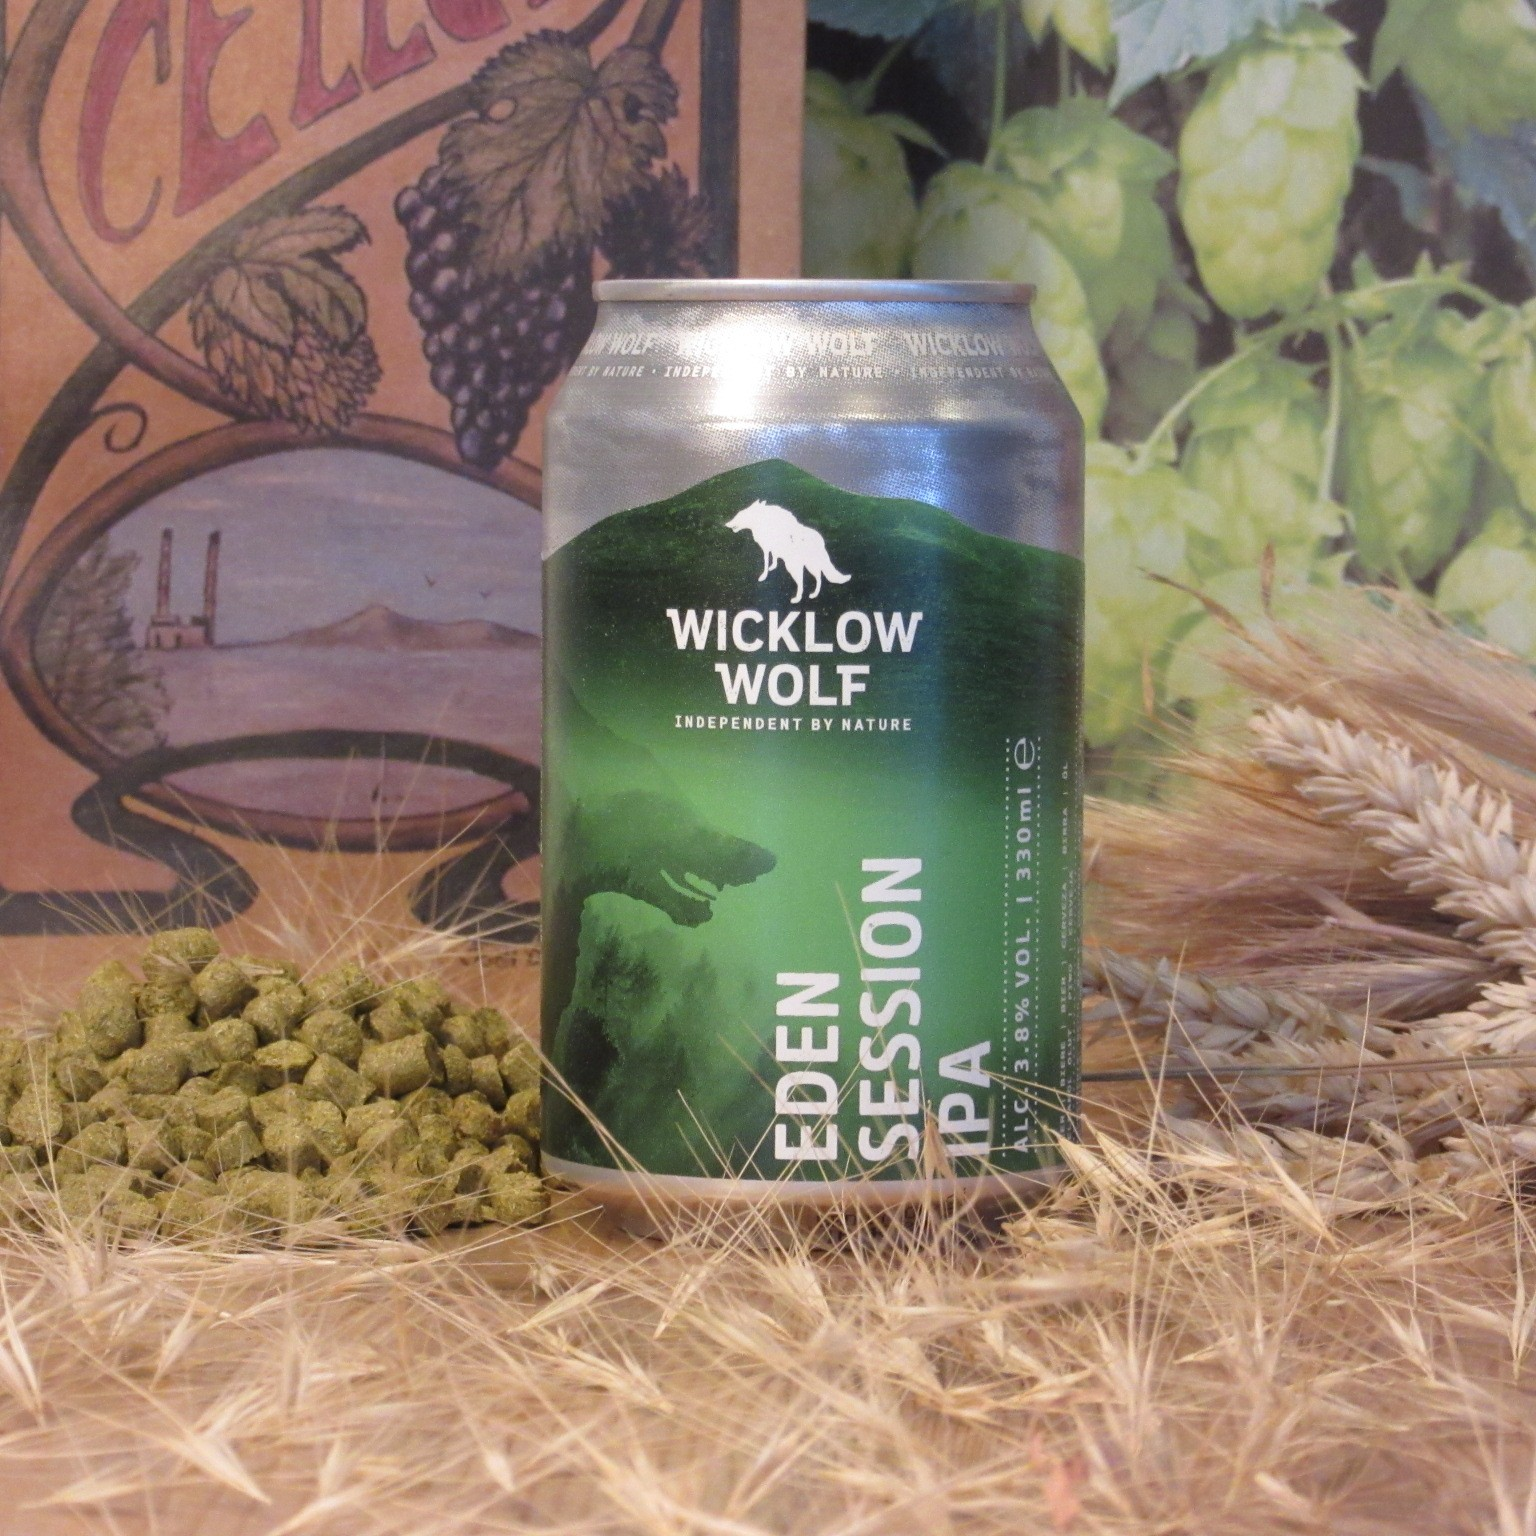 Wicklow Wolf Eden Session IPA